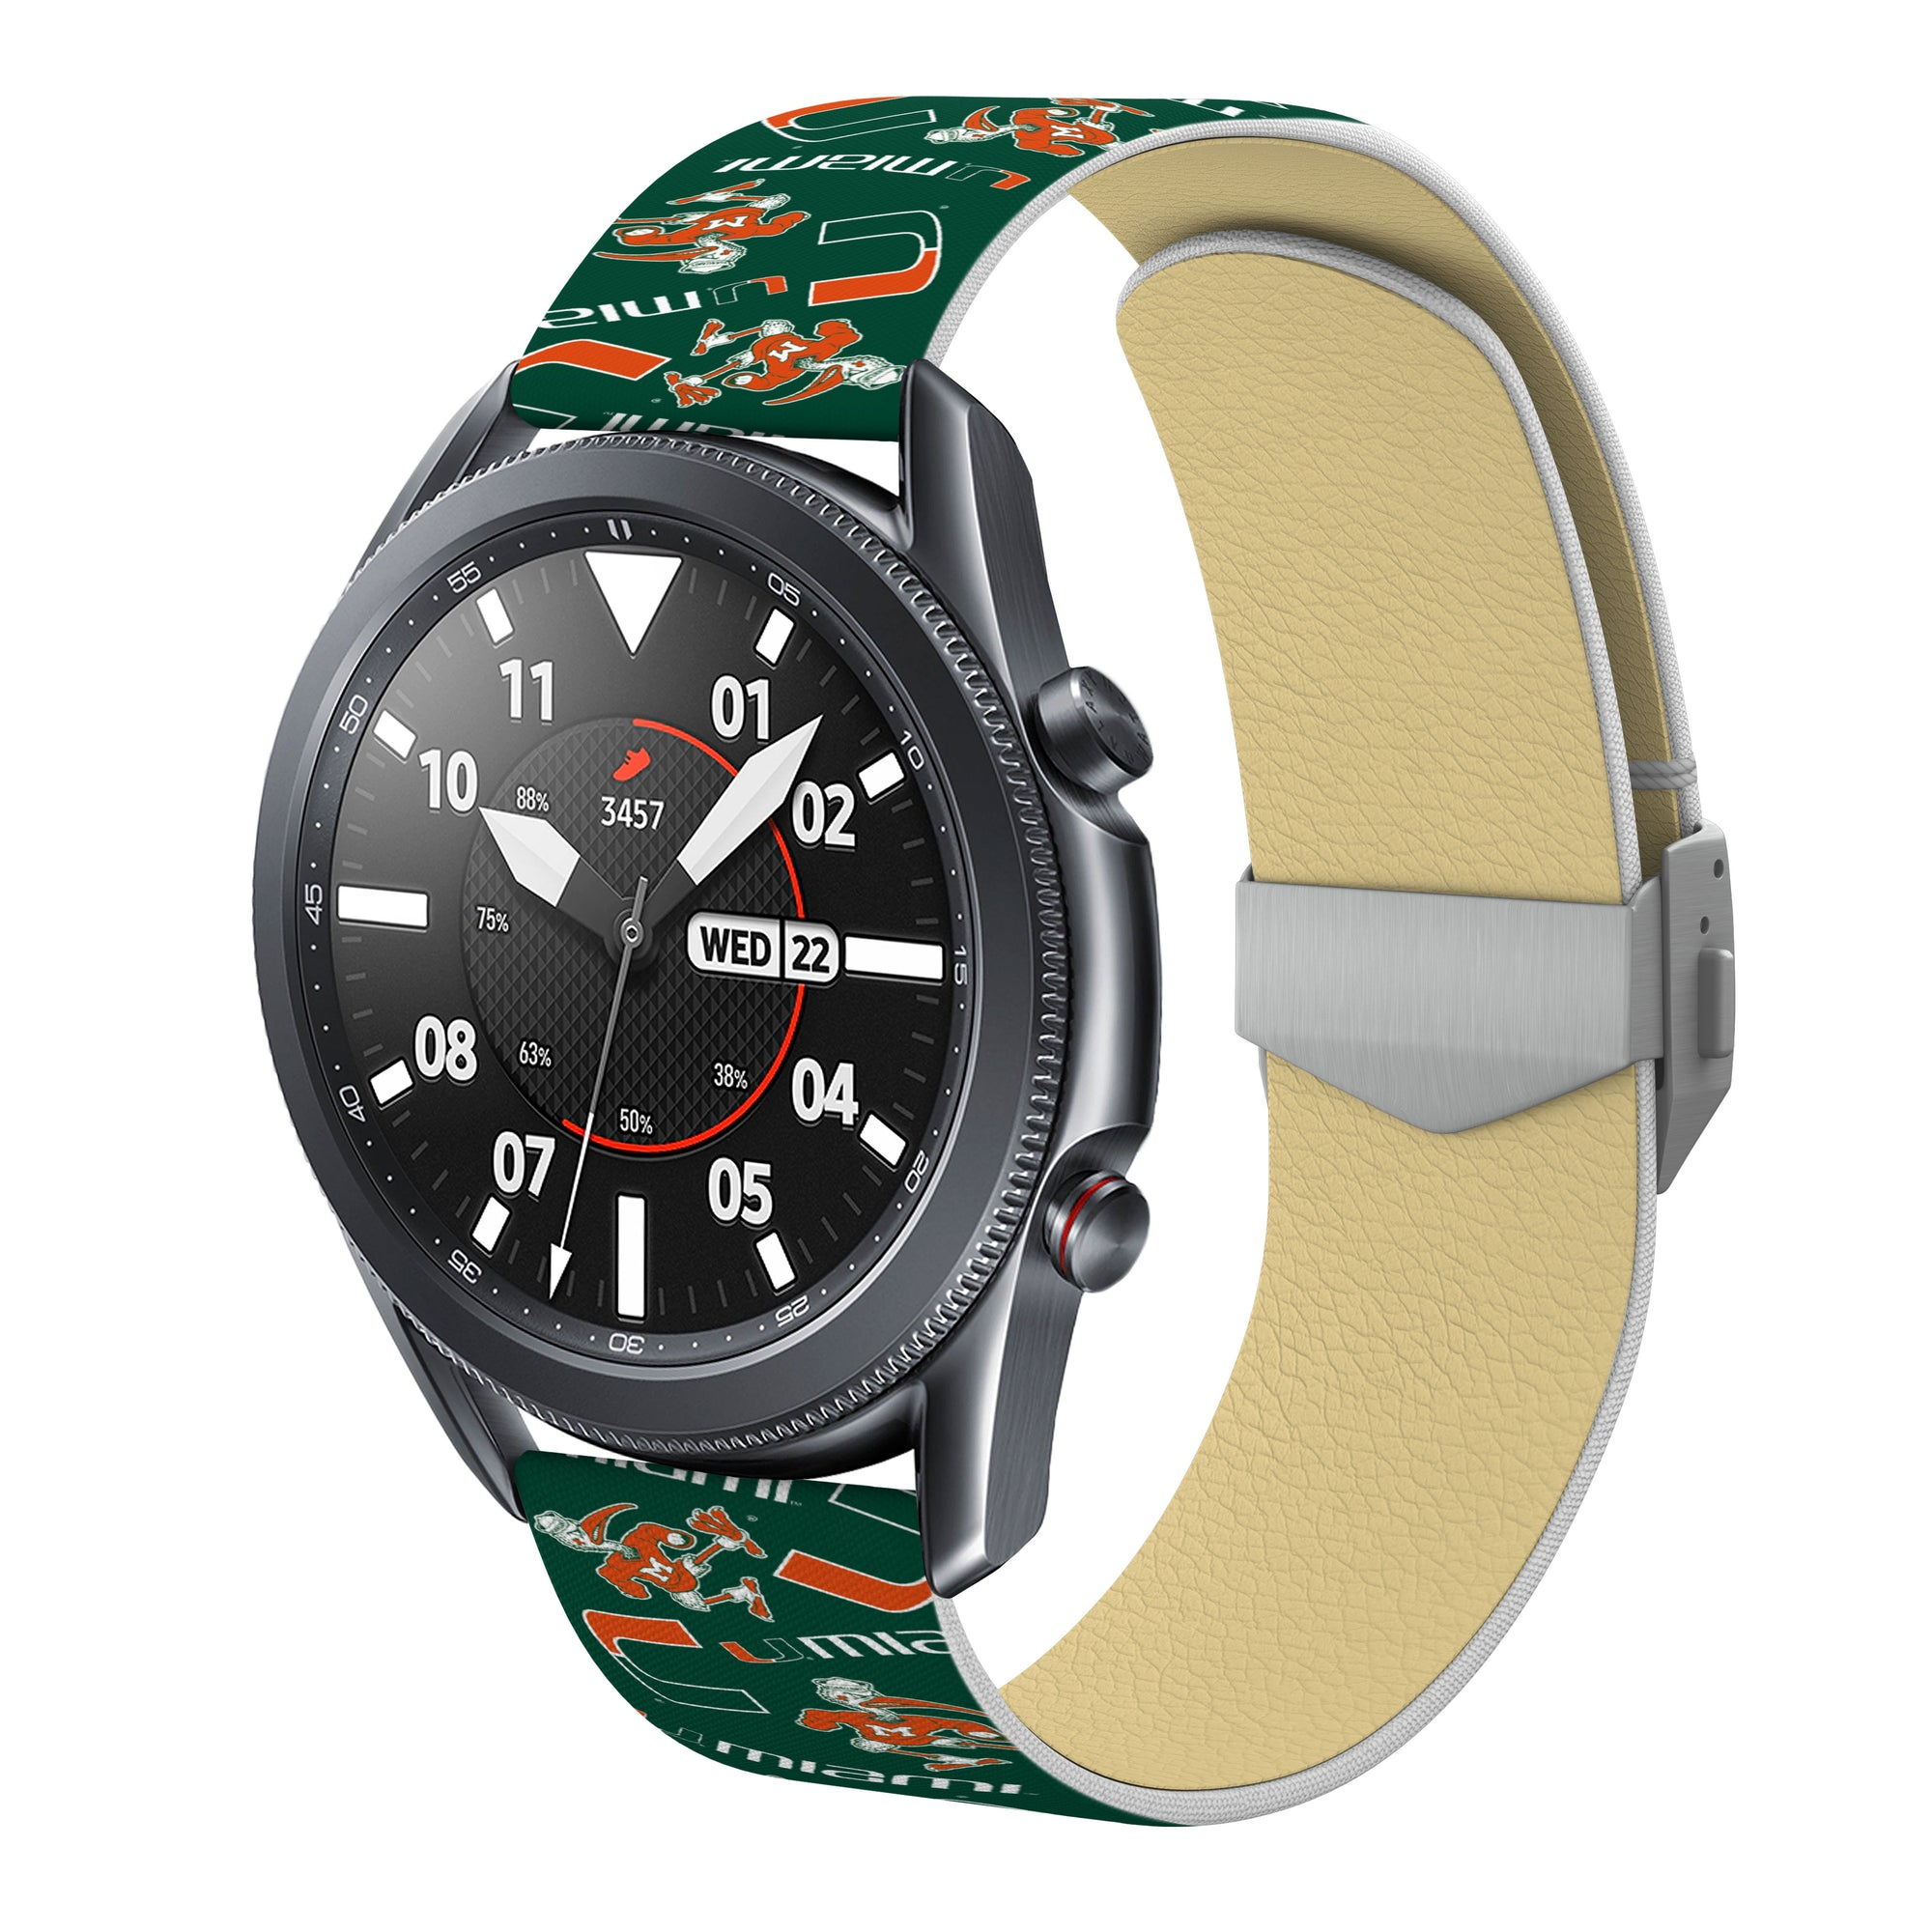 Miami Hurricanes Full Print Quick Change Watch Band With Engraved Buckle - AffinityBands